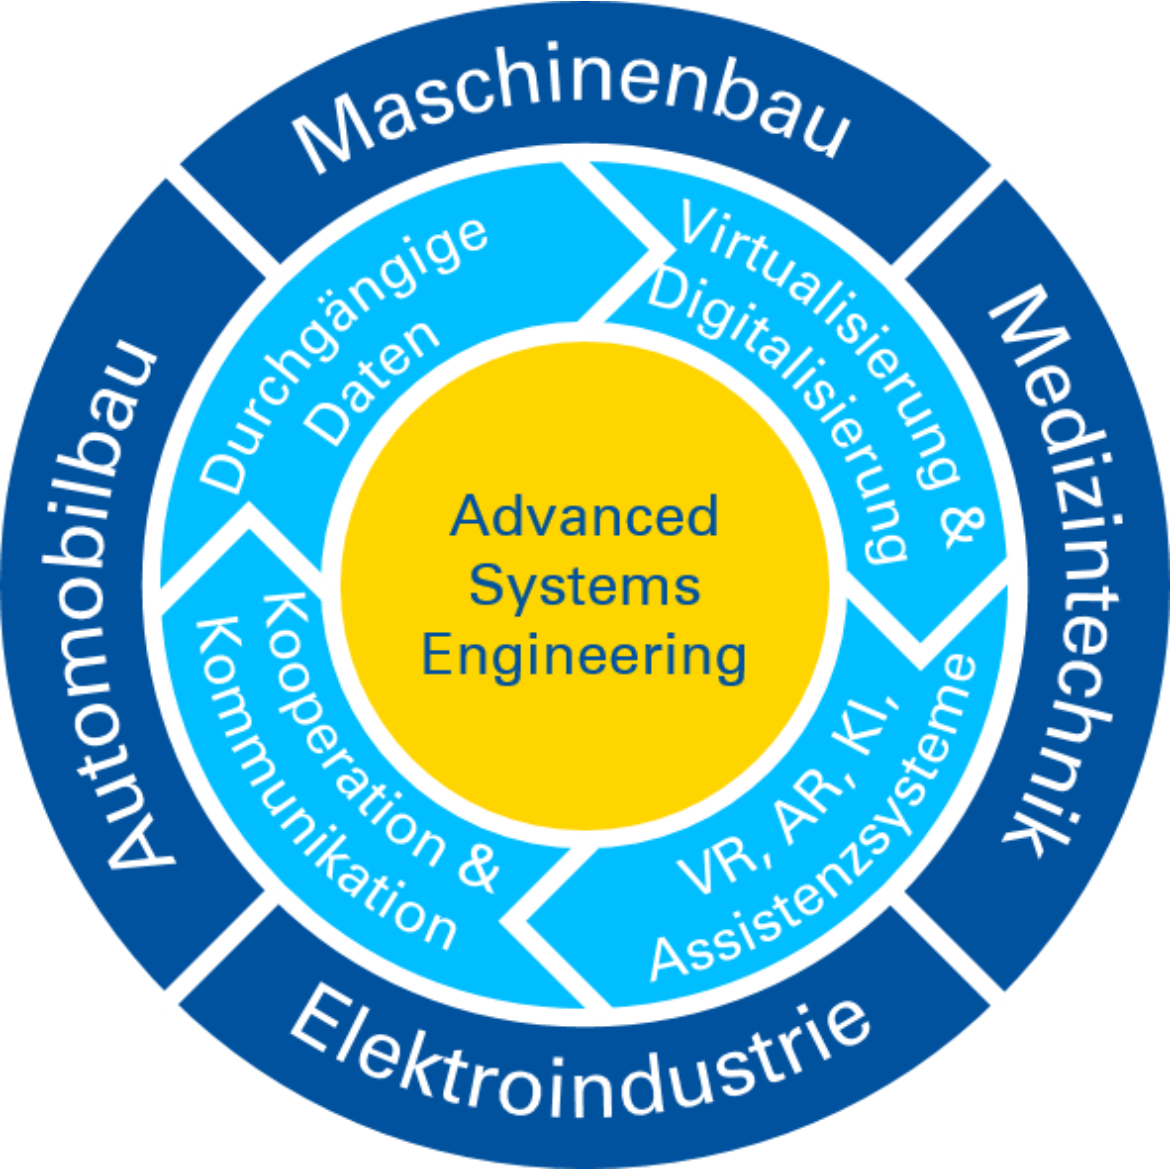 Advanced Systems Engineering-Ansatz der Fakultät 7 (c)